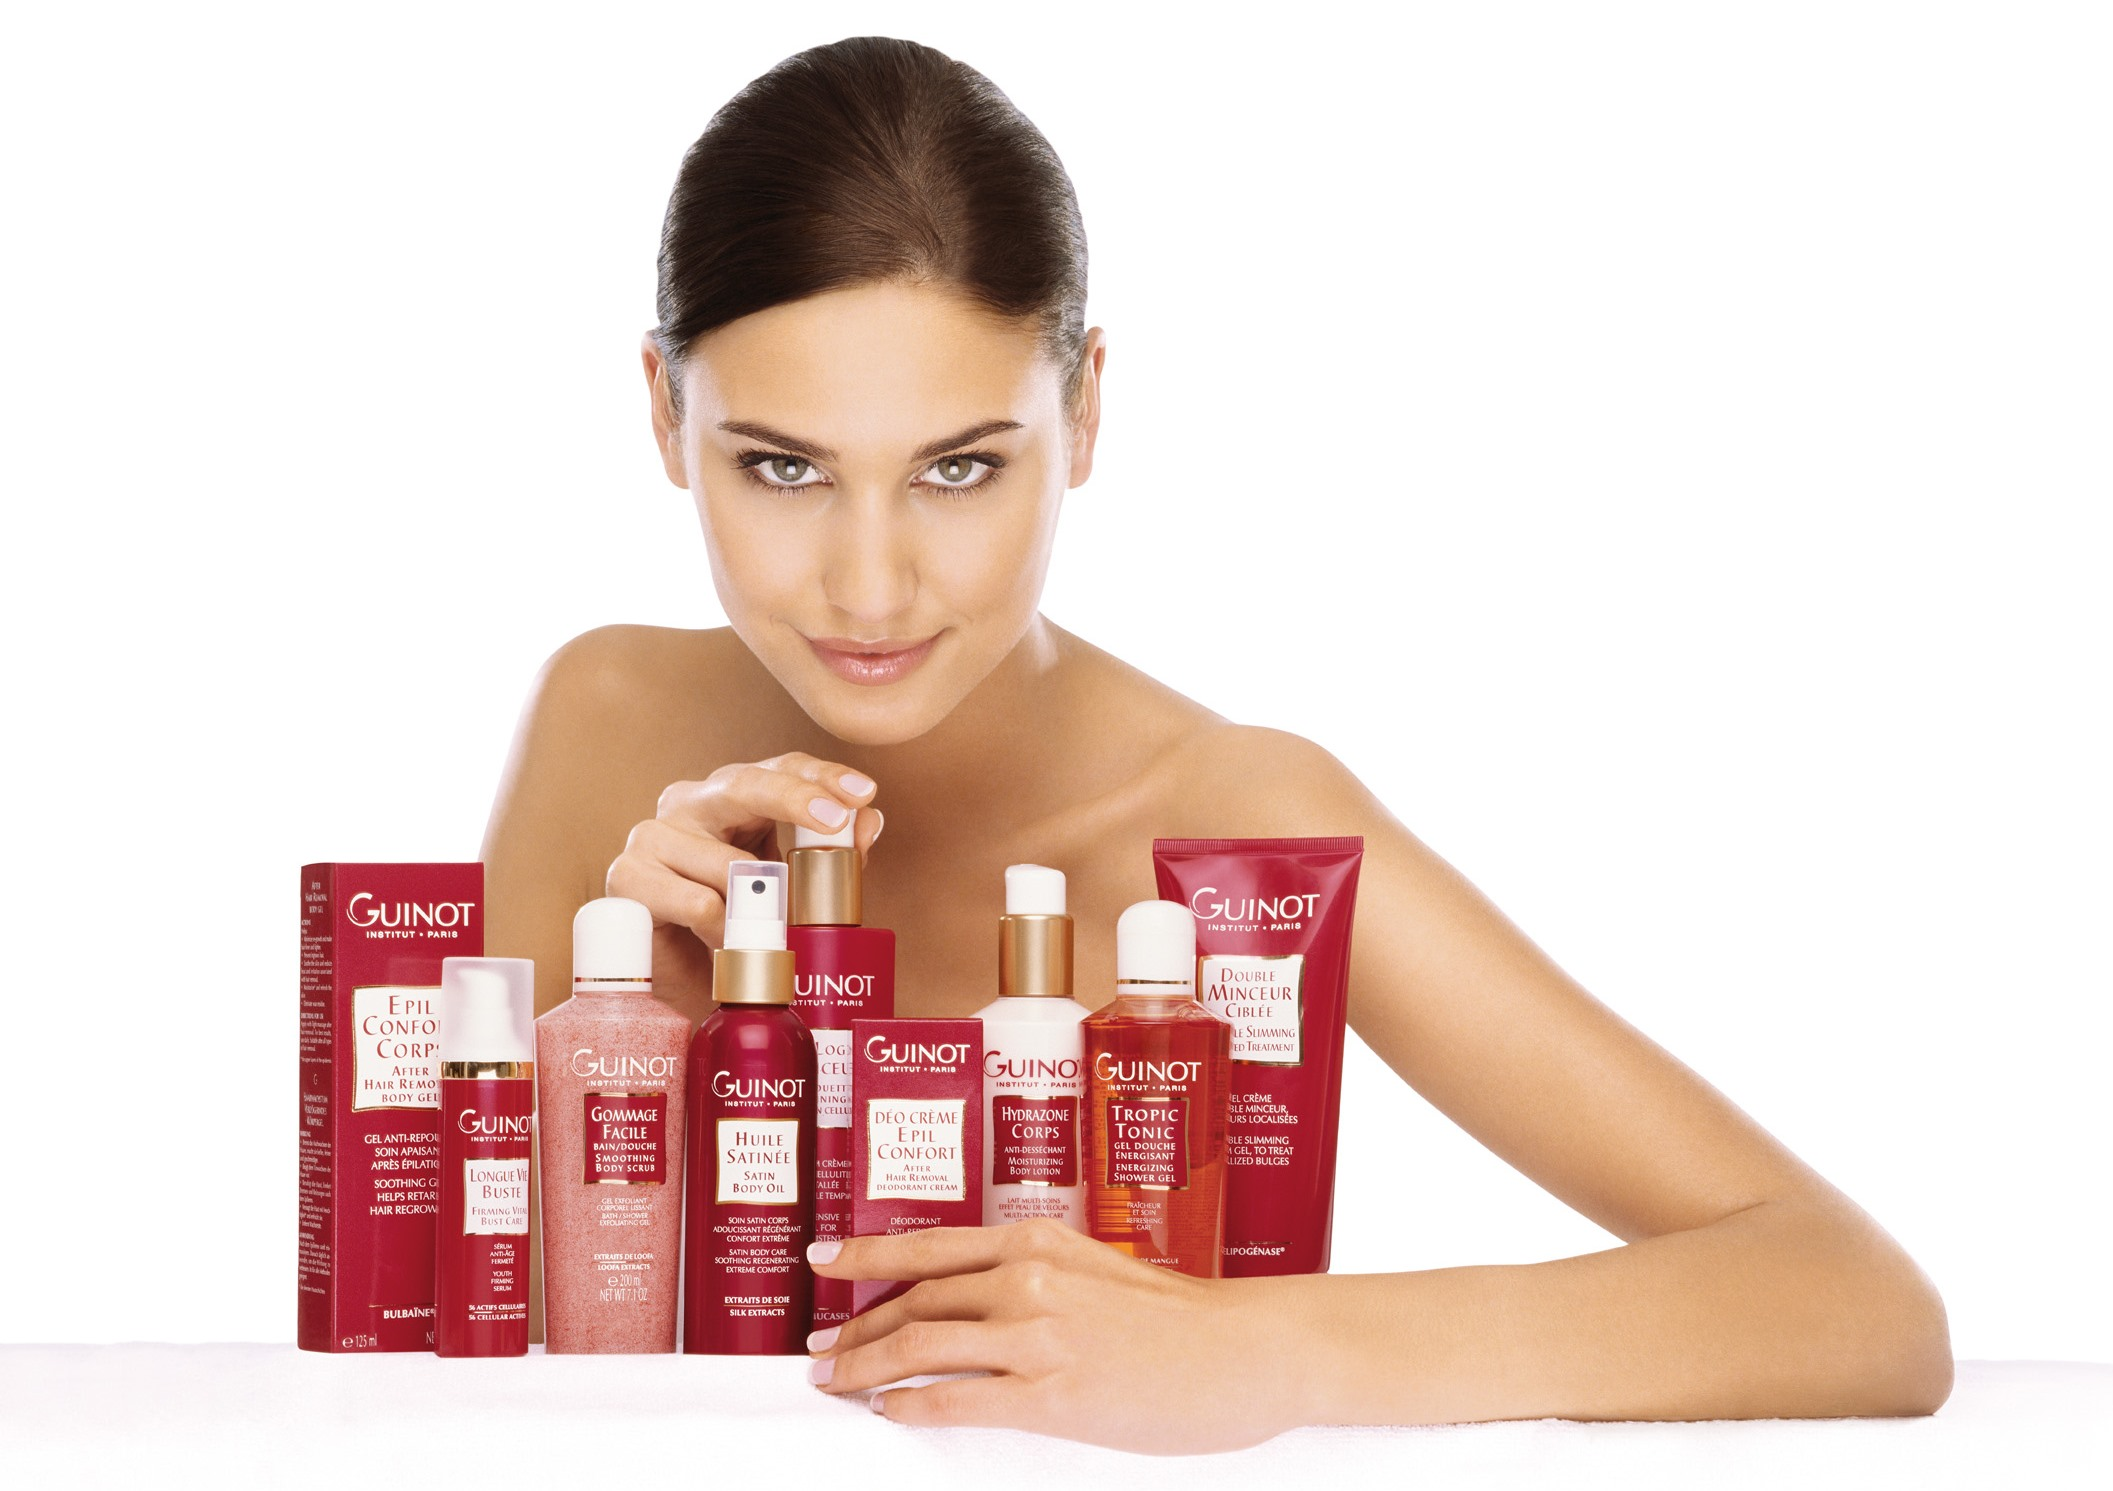 Quays Beauty - Guinot Beauty Products